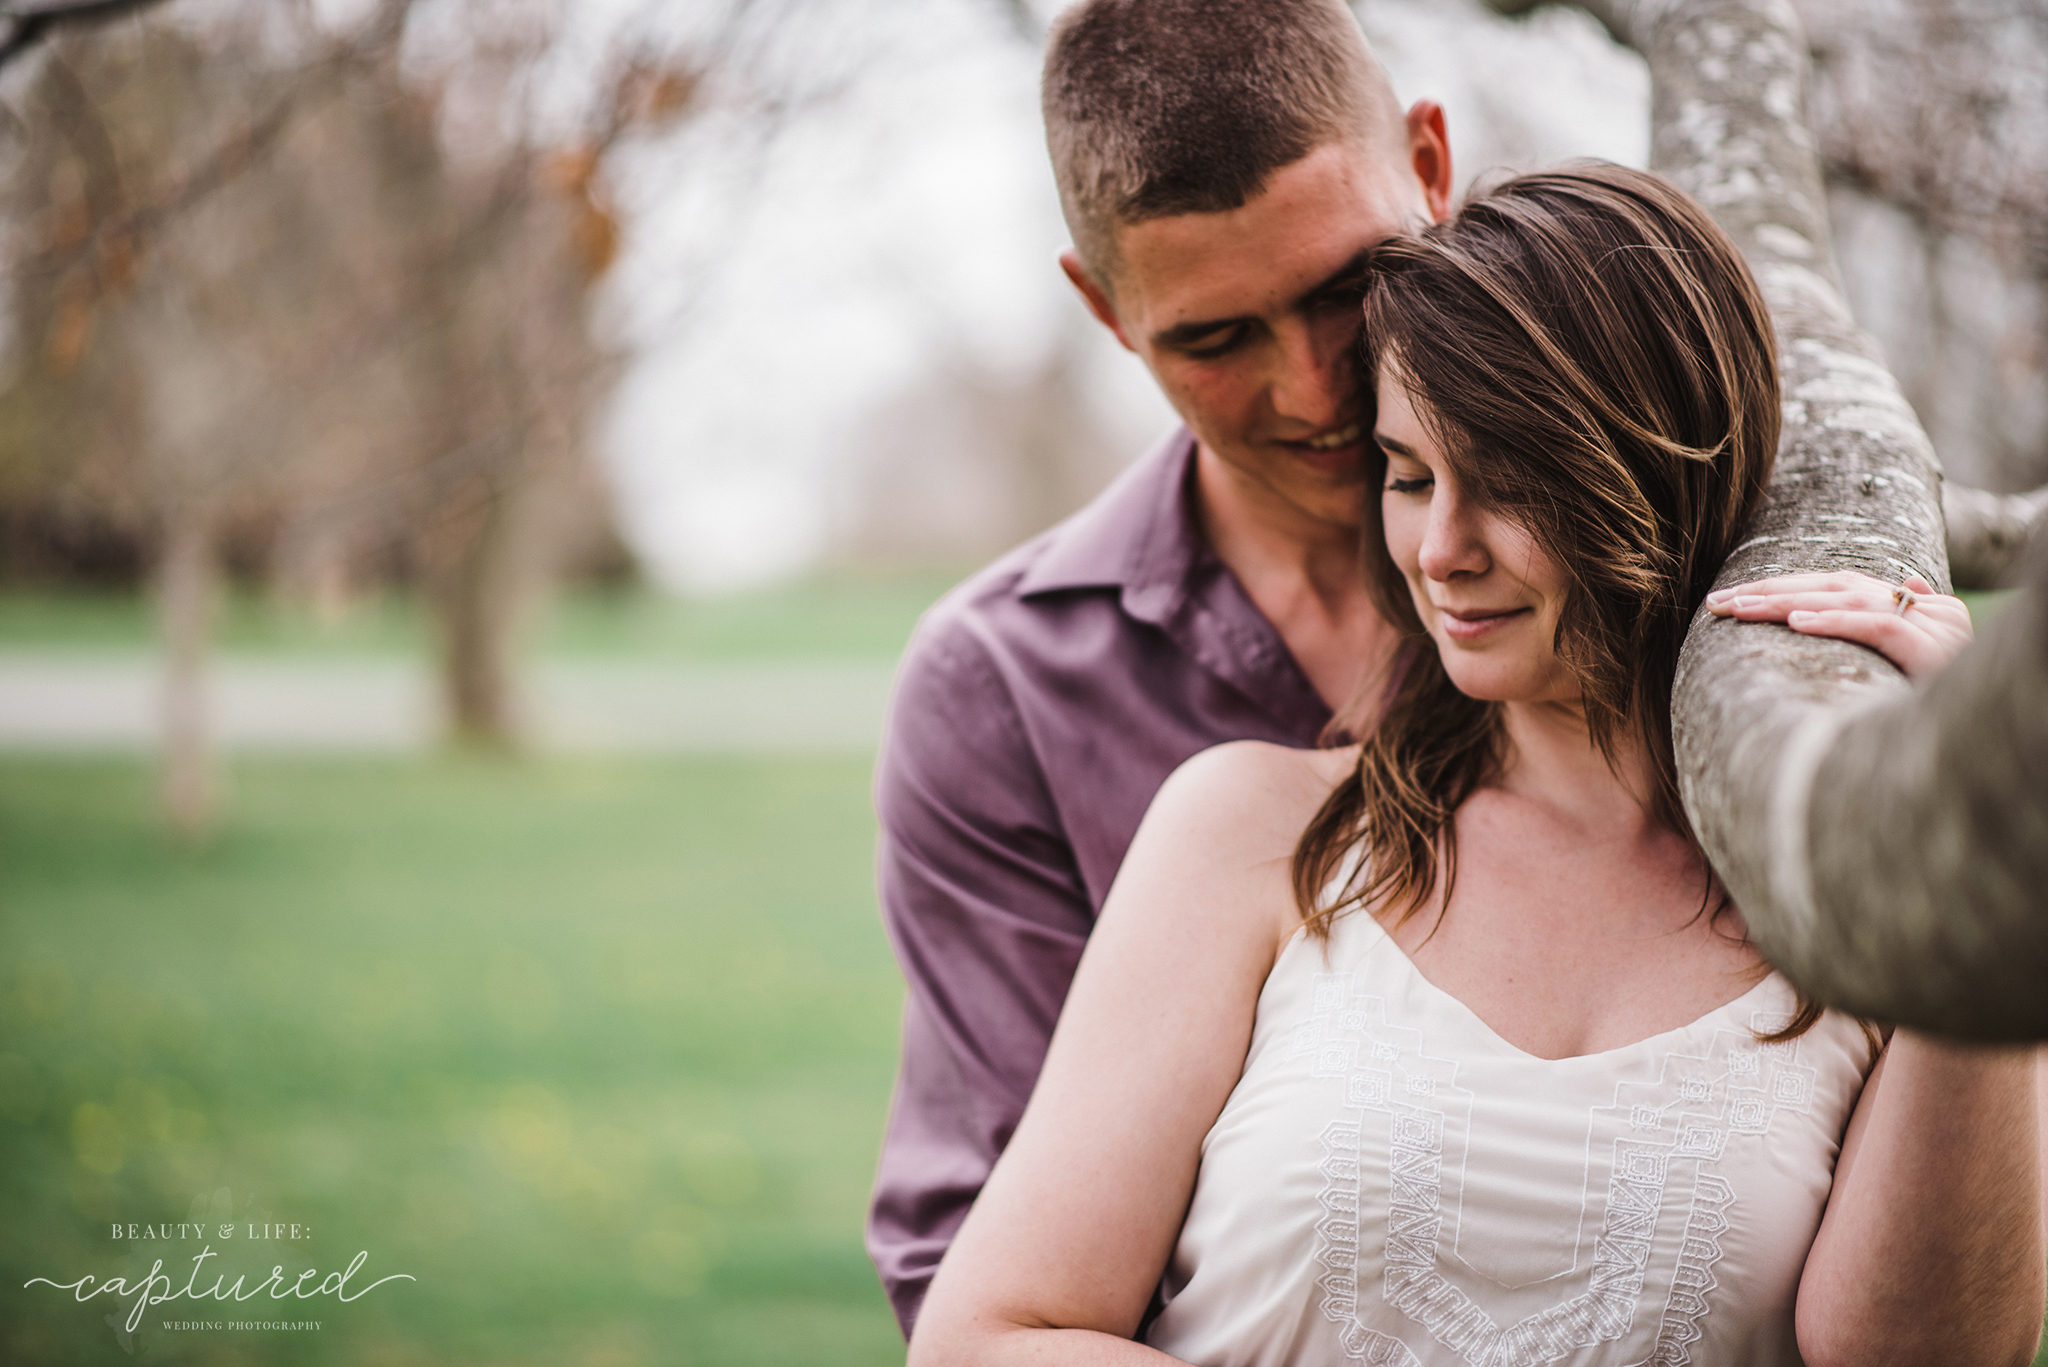 Beautyandlifecaptured_Christina_Engagement-20.jpg